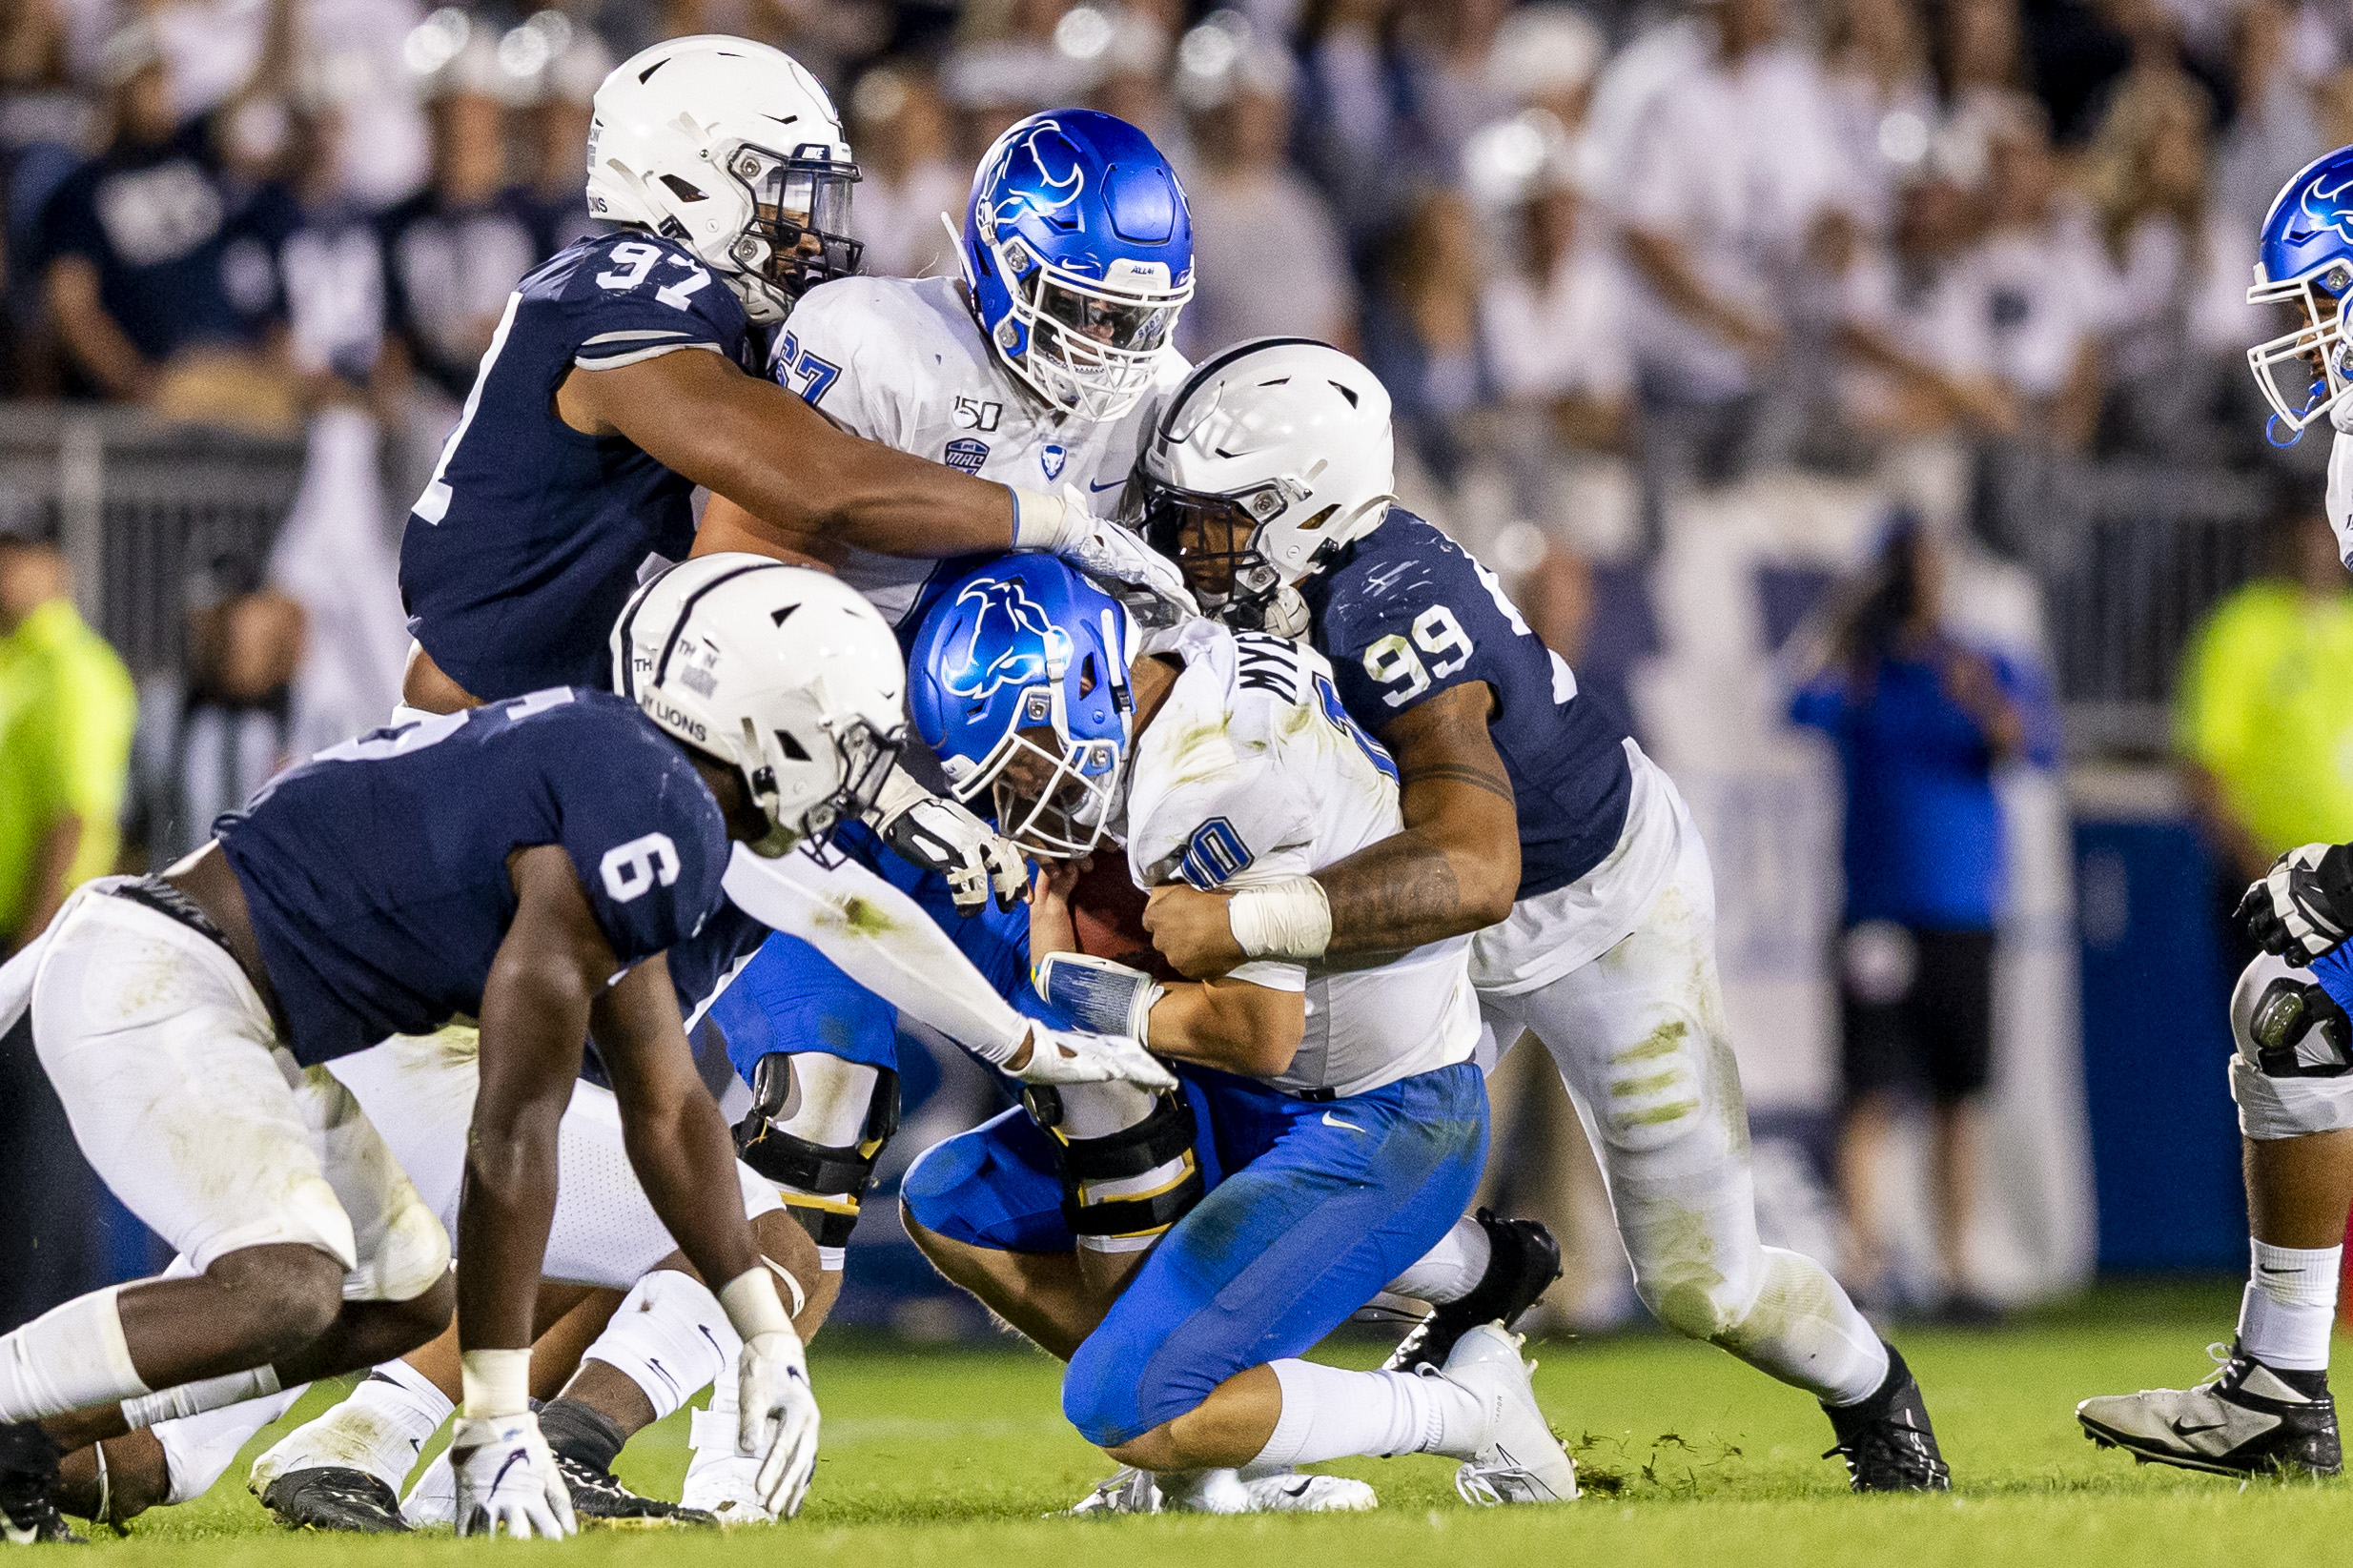 Penn State's James Franklin on one potential defensive issue, a running back update, the Lions' youth movement, more